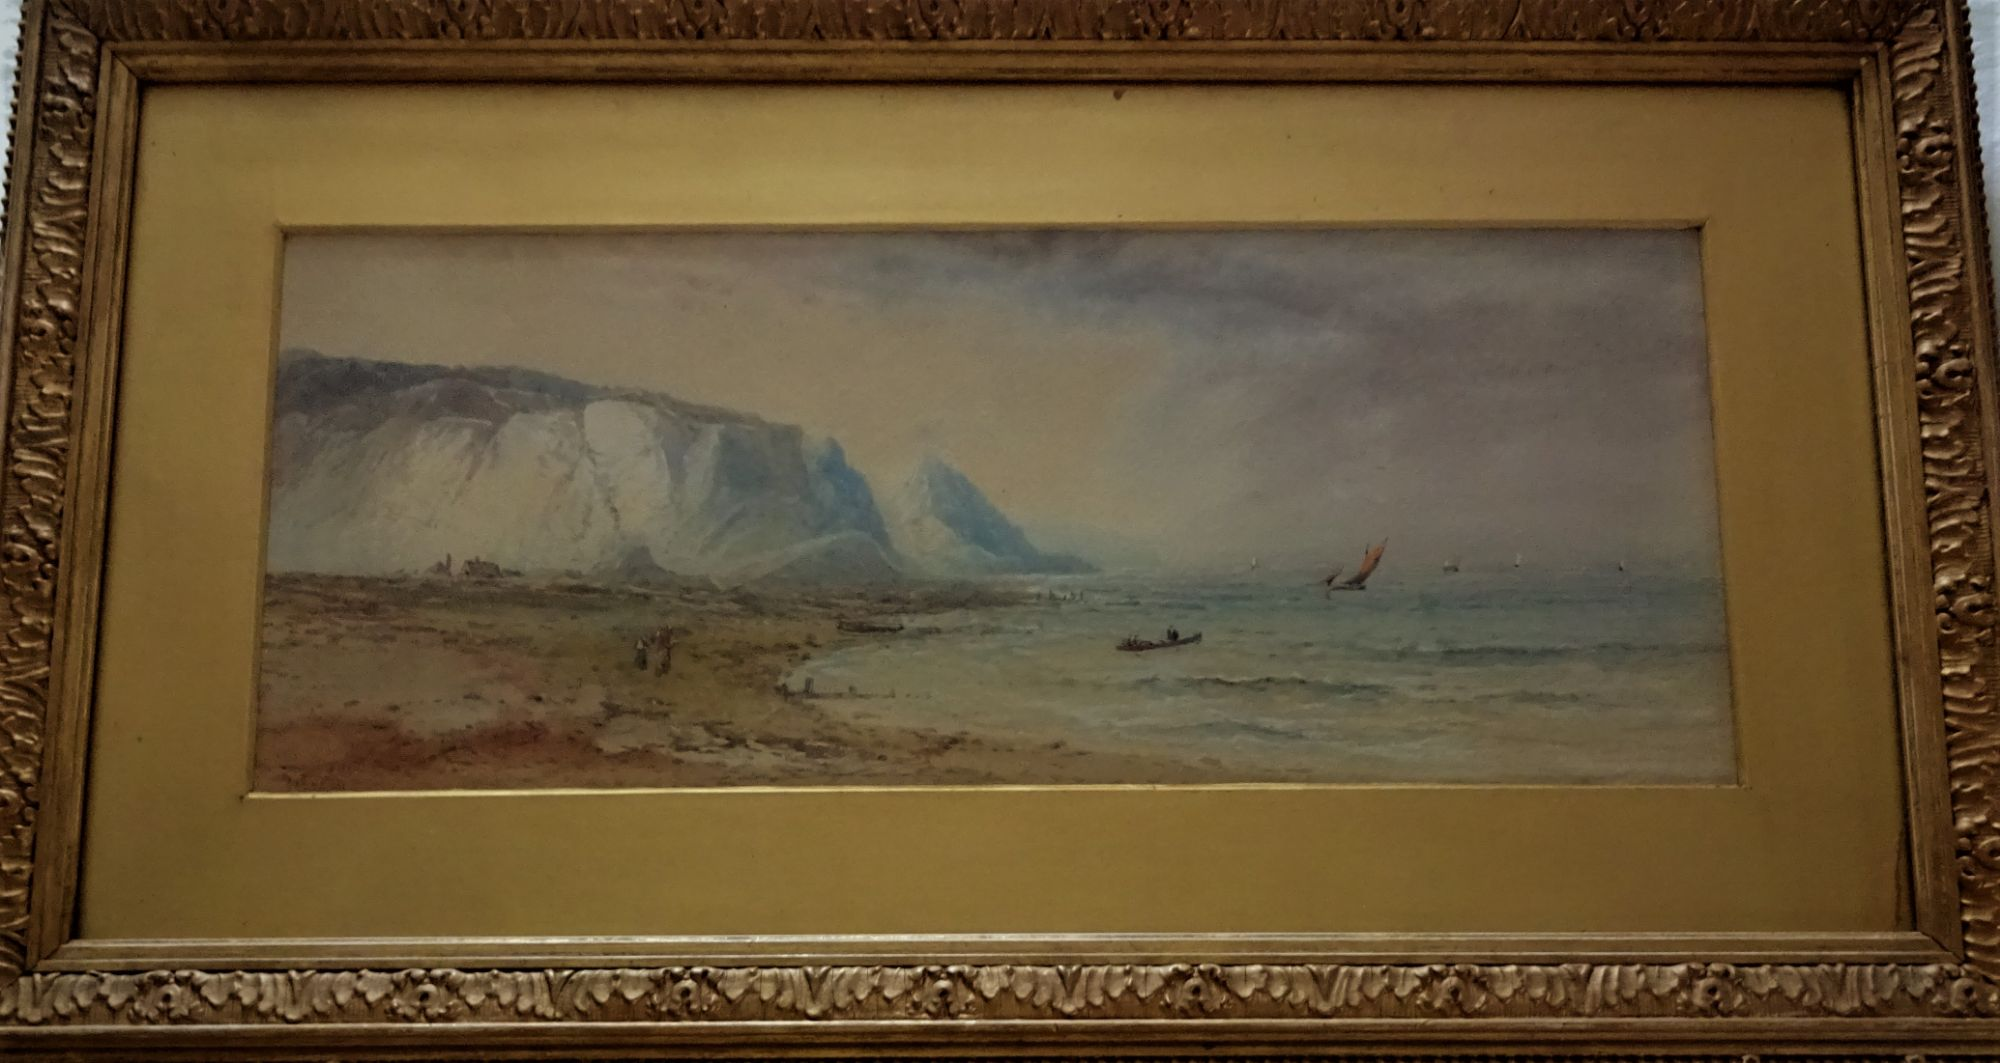 Home in the Jot of Night, watercolour on paper, signed Edwin Earp, 1890. Original frame.